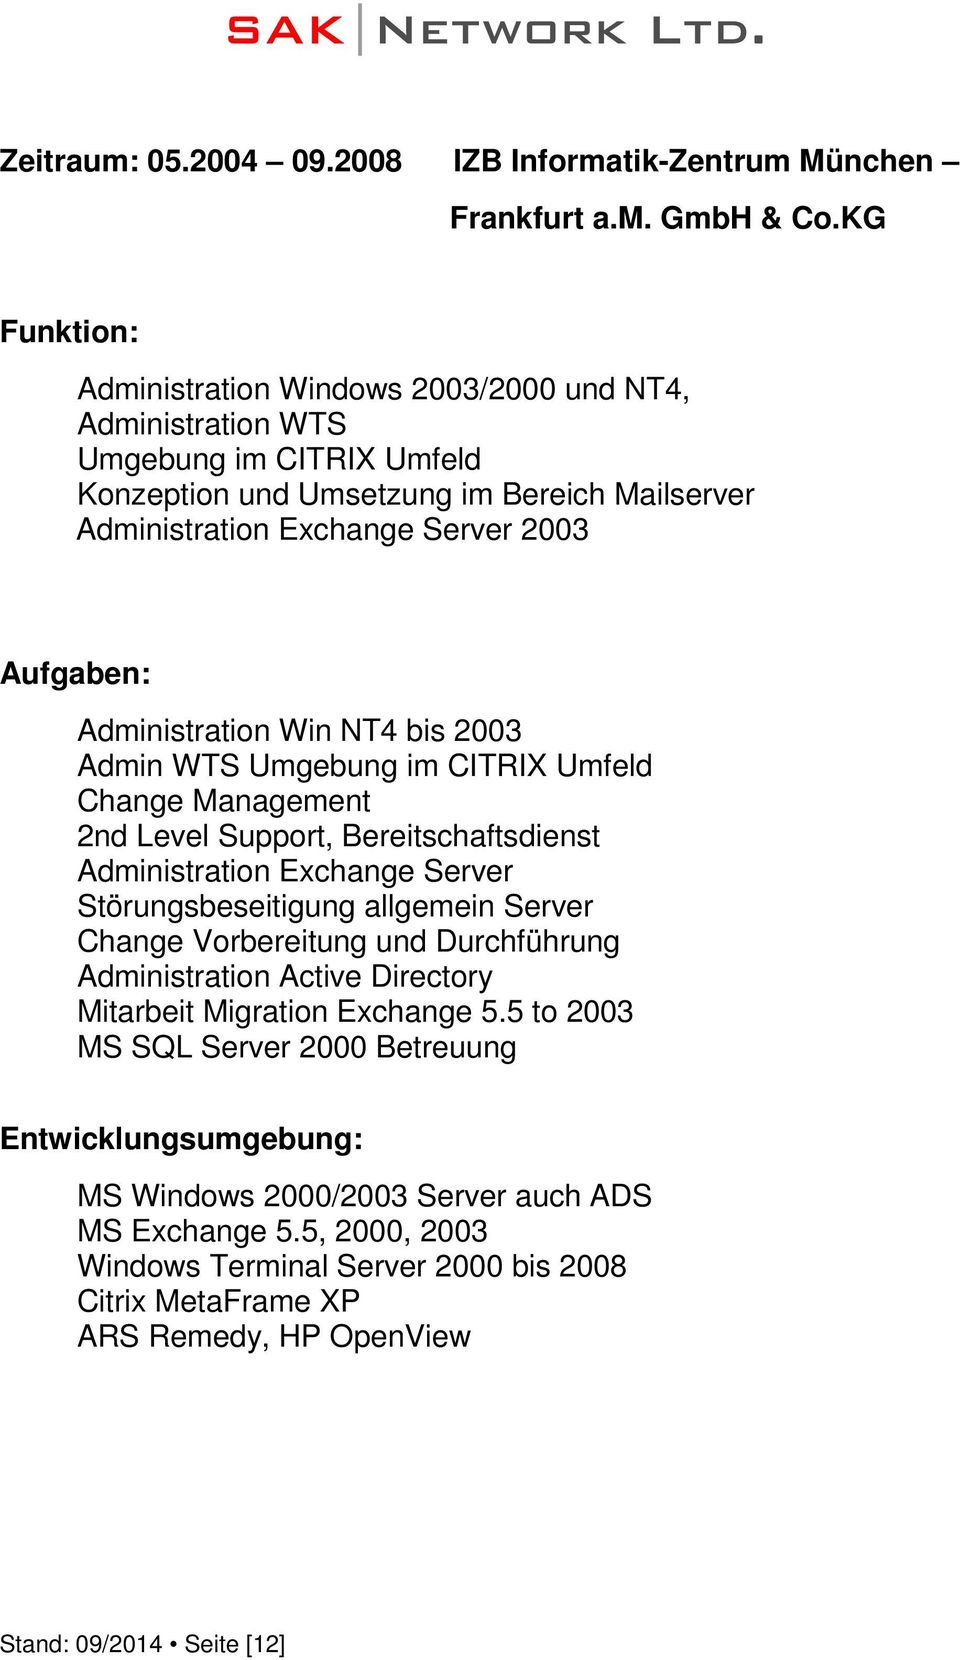 Win NT4 bis 2003 Admin WTS Umgebung im CITRIX Umfeld Change Management 2nd Level Support, Bereitschaftsdienst Administration Exchange Server Störungsbeseitigung allgemein Server Change